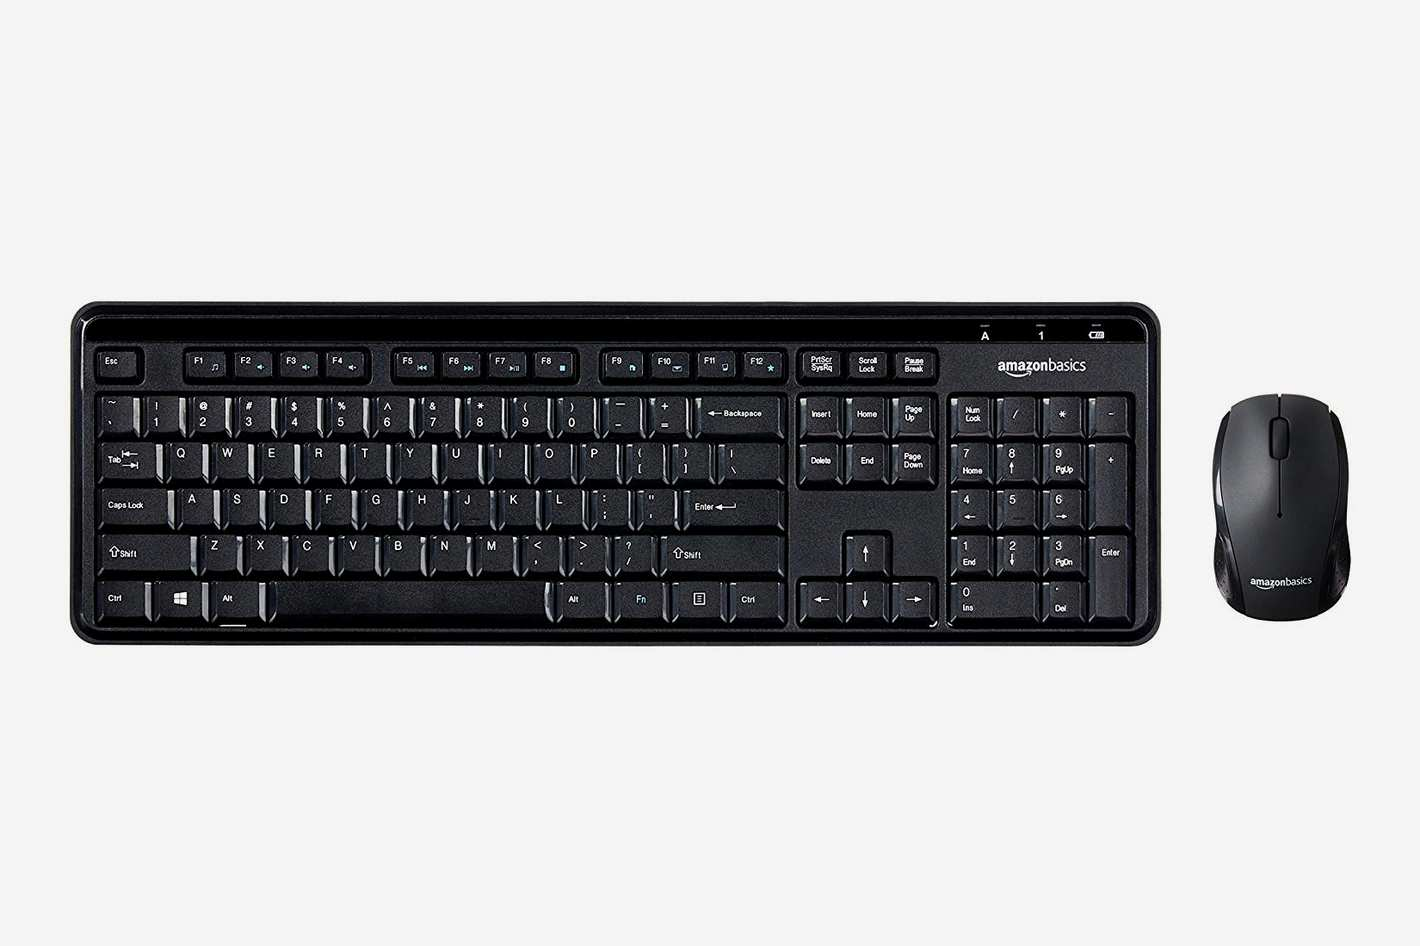 AmazonBasics Wireless Computer Keyboard and Mouse Combo - Quiet and Compact